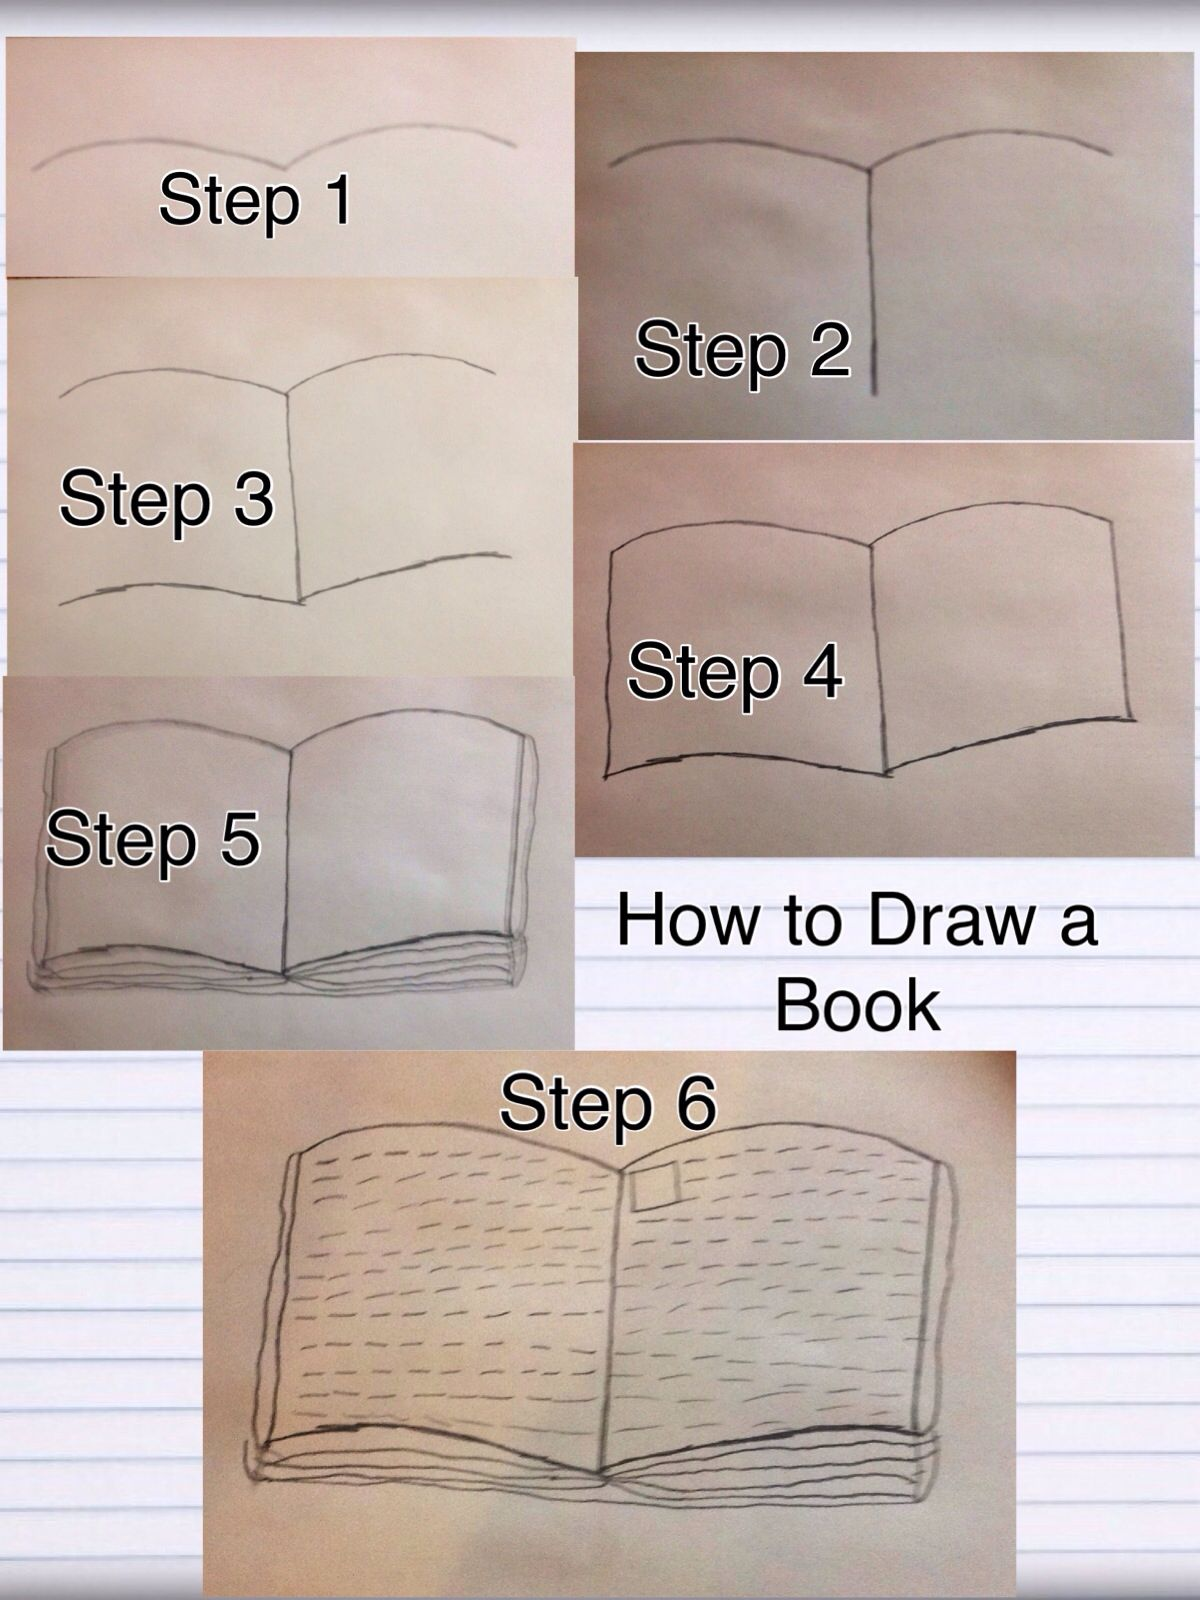 How To Draw An Open Book In 6 Easy Steps!